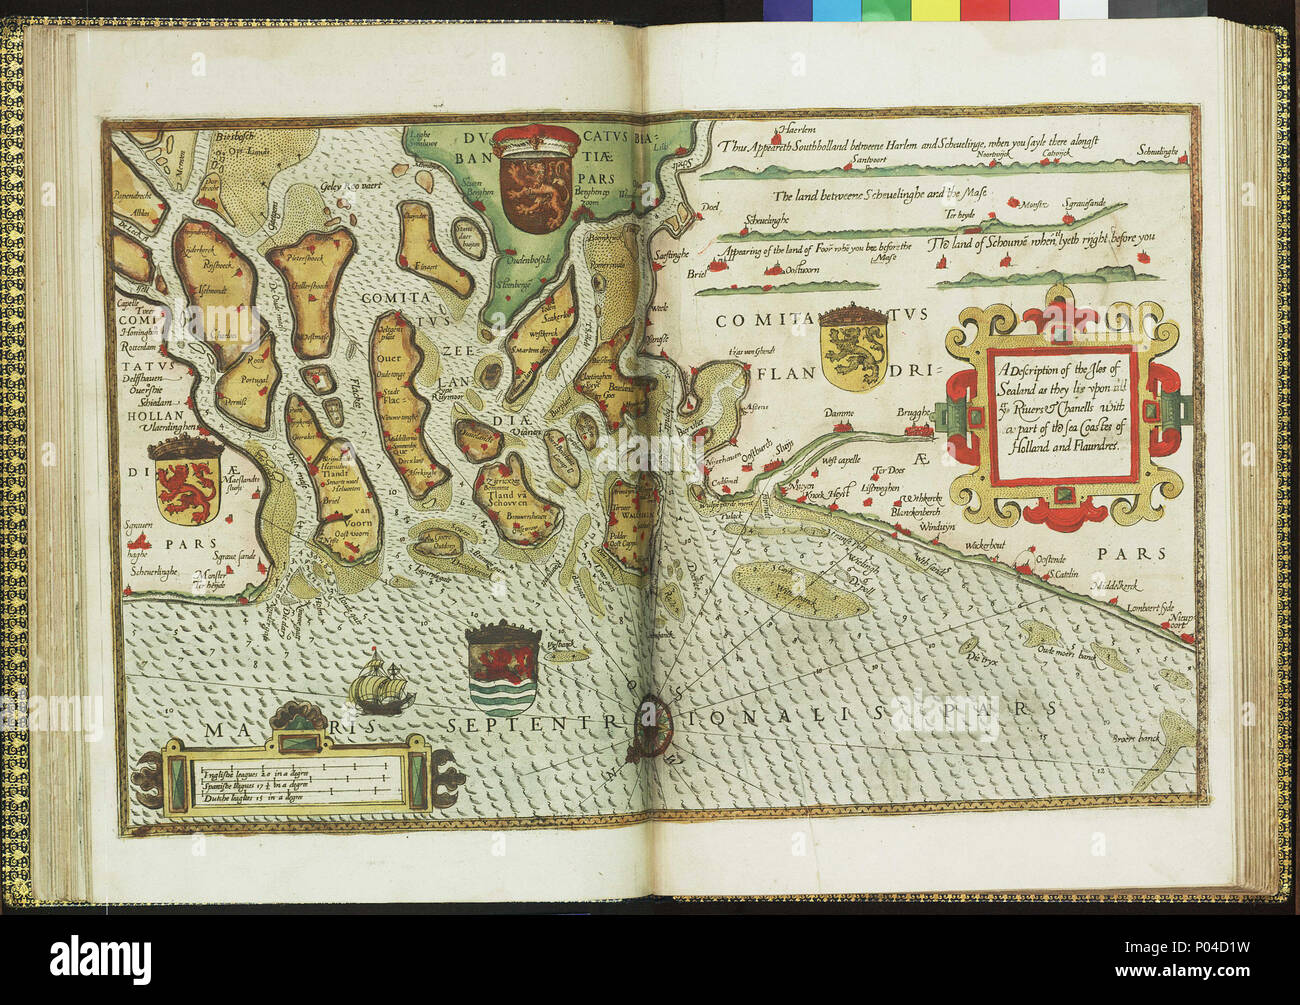 .  English: A description of the Isles of Sealand as they lie upon all ye rivers & channells with a part of the sea coast of Holland and FlaundersBound sheet. Hand coloured engraving. Scale: [circa 1:400,000 (bar)]. North at 232 degrees. The bar scales are in English, Spanish and Dutch leagues. Additional Places: Schelde. The chart contains four coastal profiles, shows beacons and buoys and is decorated with one ship. A chart from Anthony Ashley's English edition of 'The Mariners Mirrour'. Lord Howard of Effingham ordered Waghenaer's sea atlas 'De Spieghel der Zeevaerdt' to be translated. It w - Stock Image